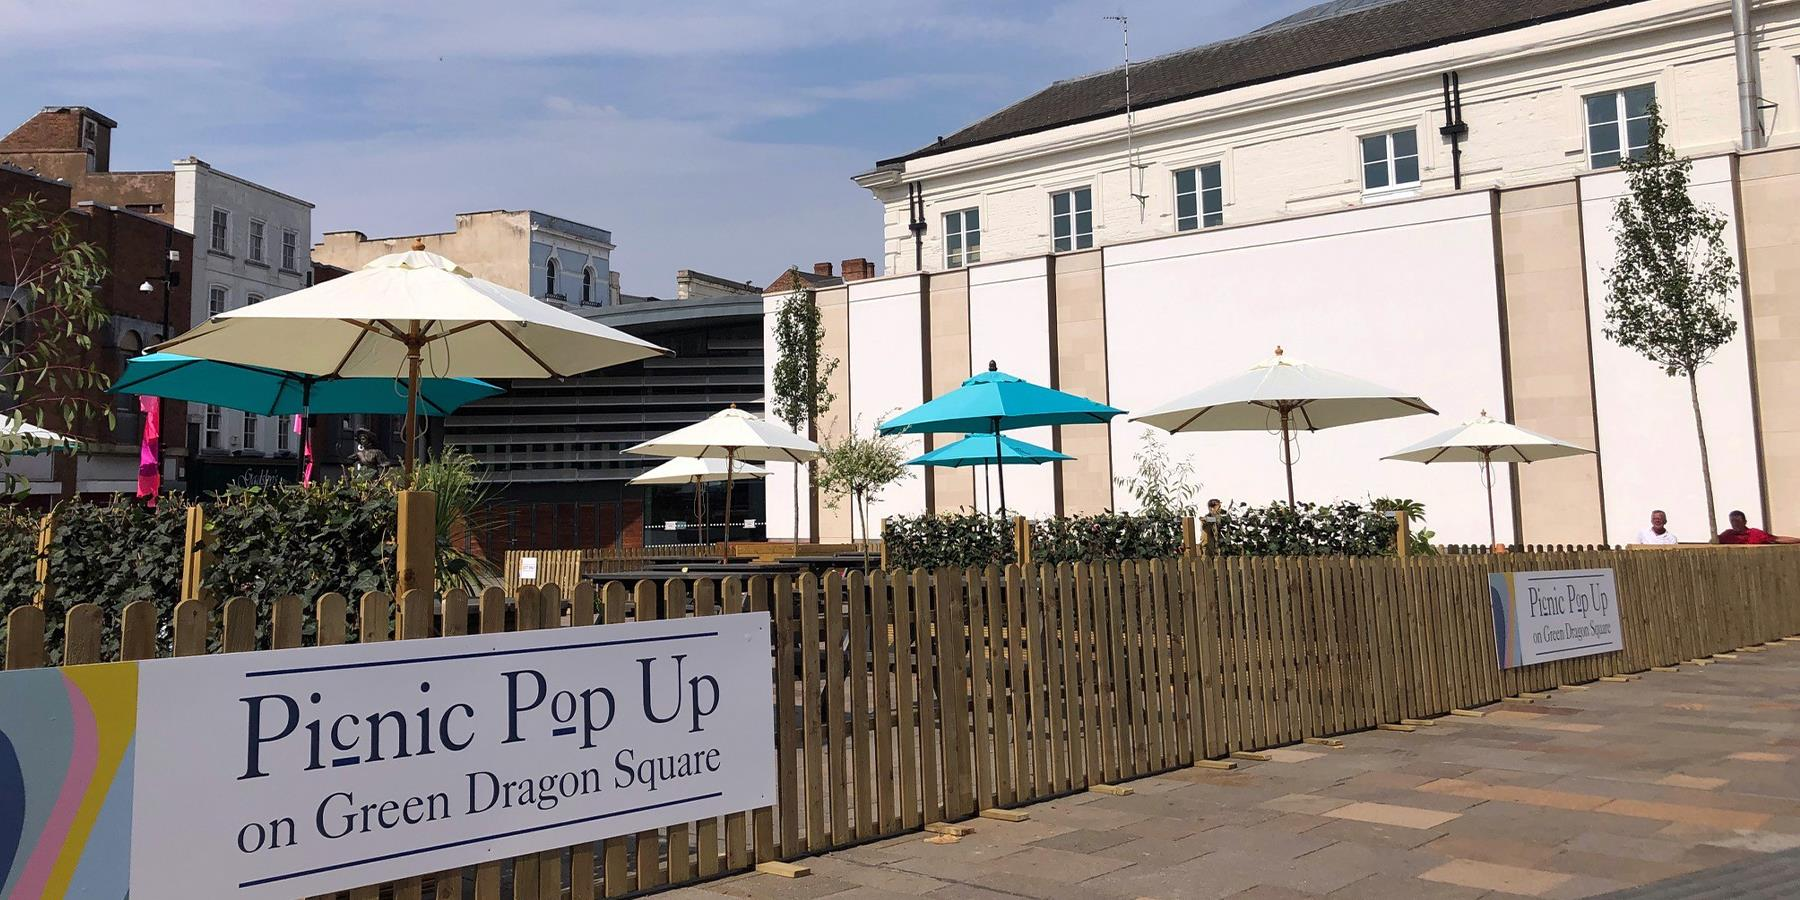 picnic pop up on green dragon square